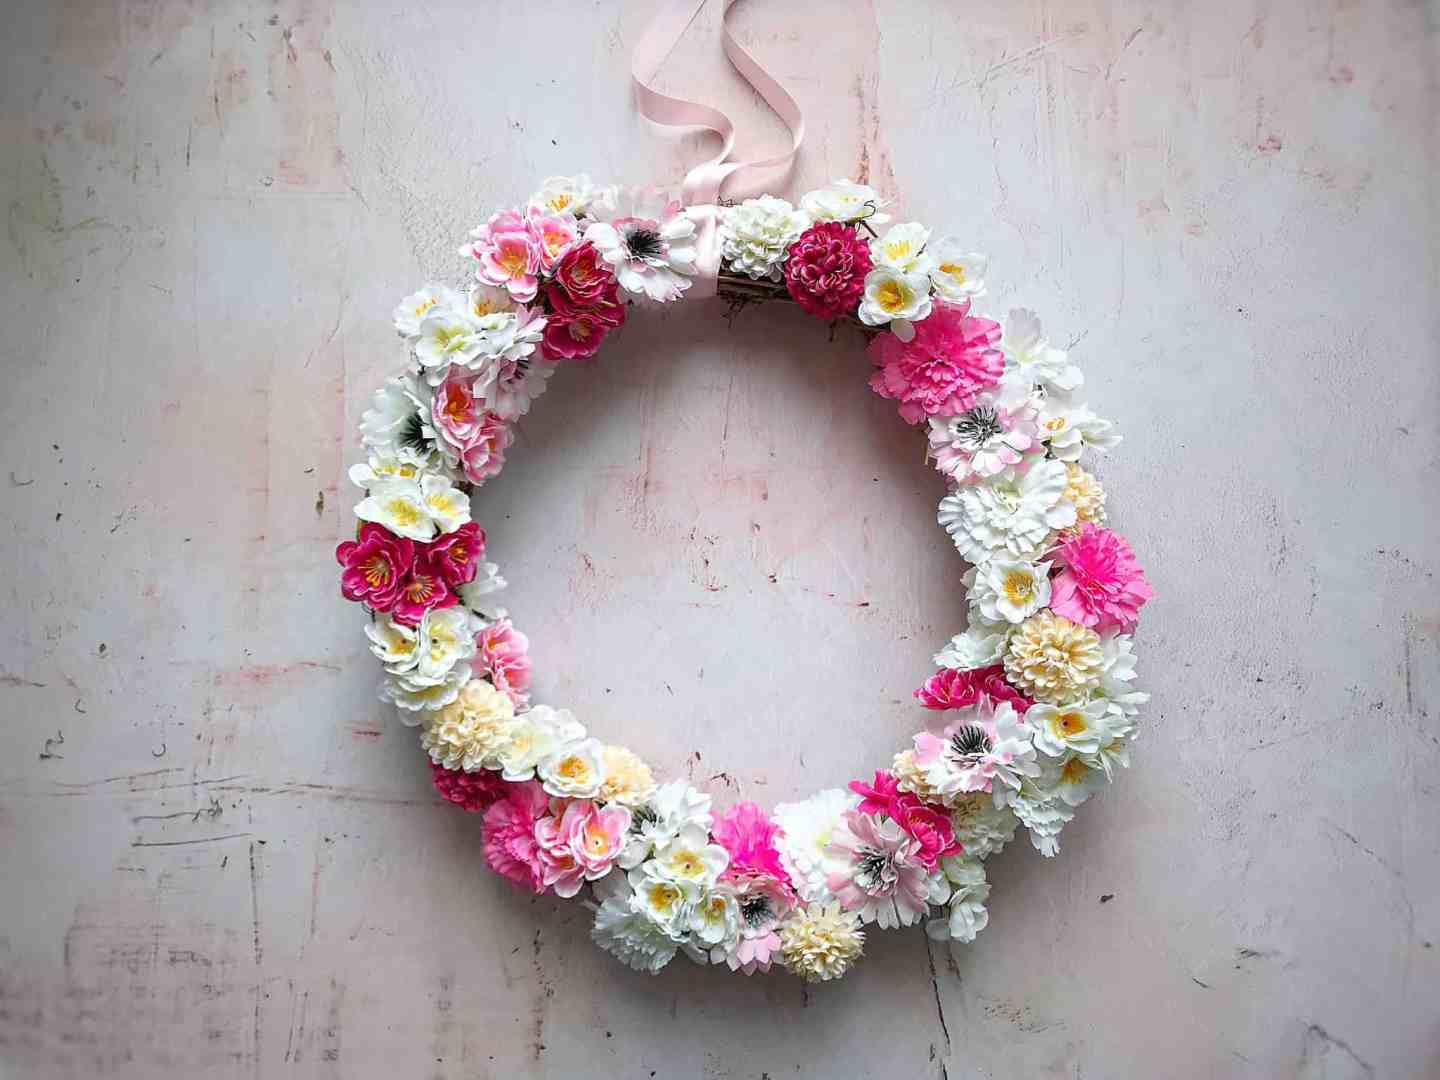 How To Make An Easy Spring Wreath in Minutes